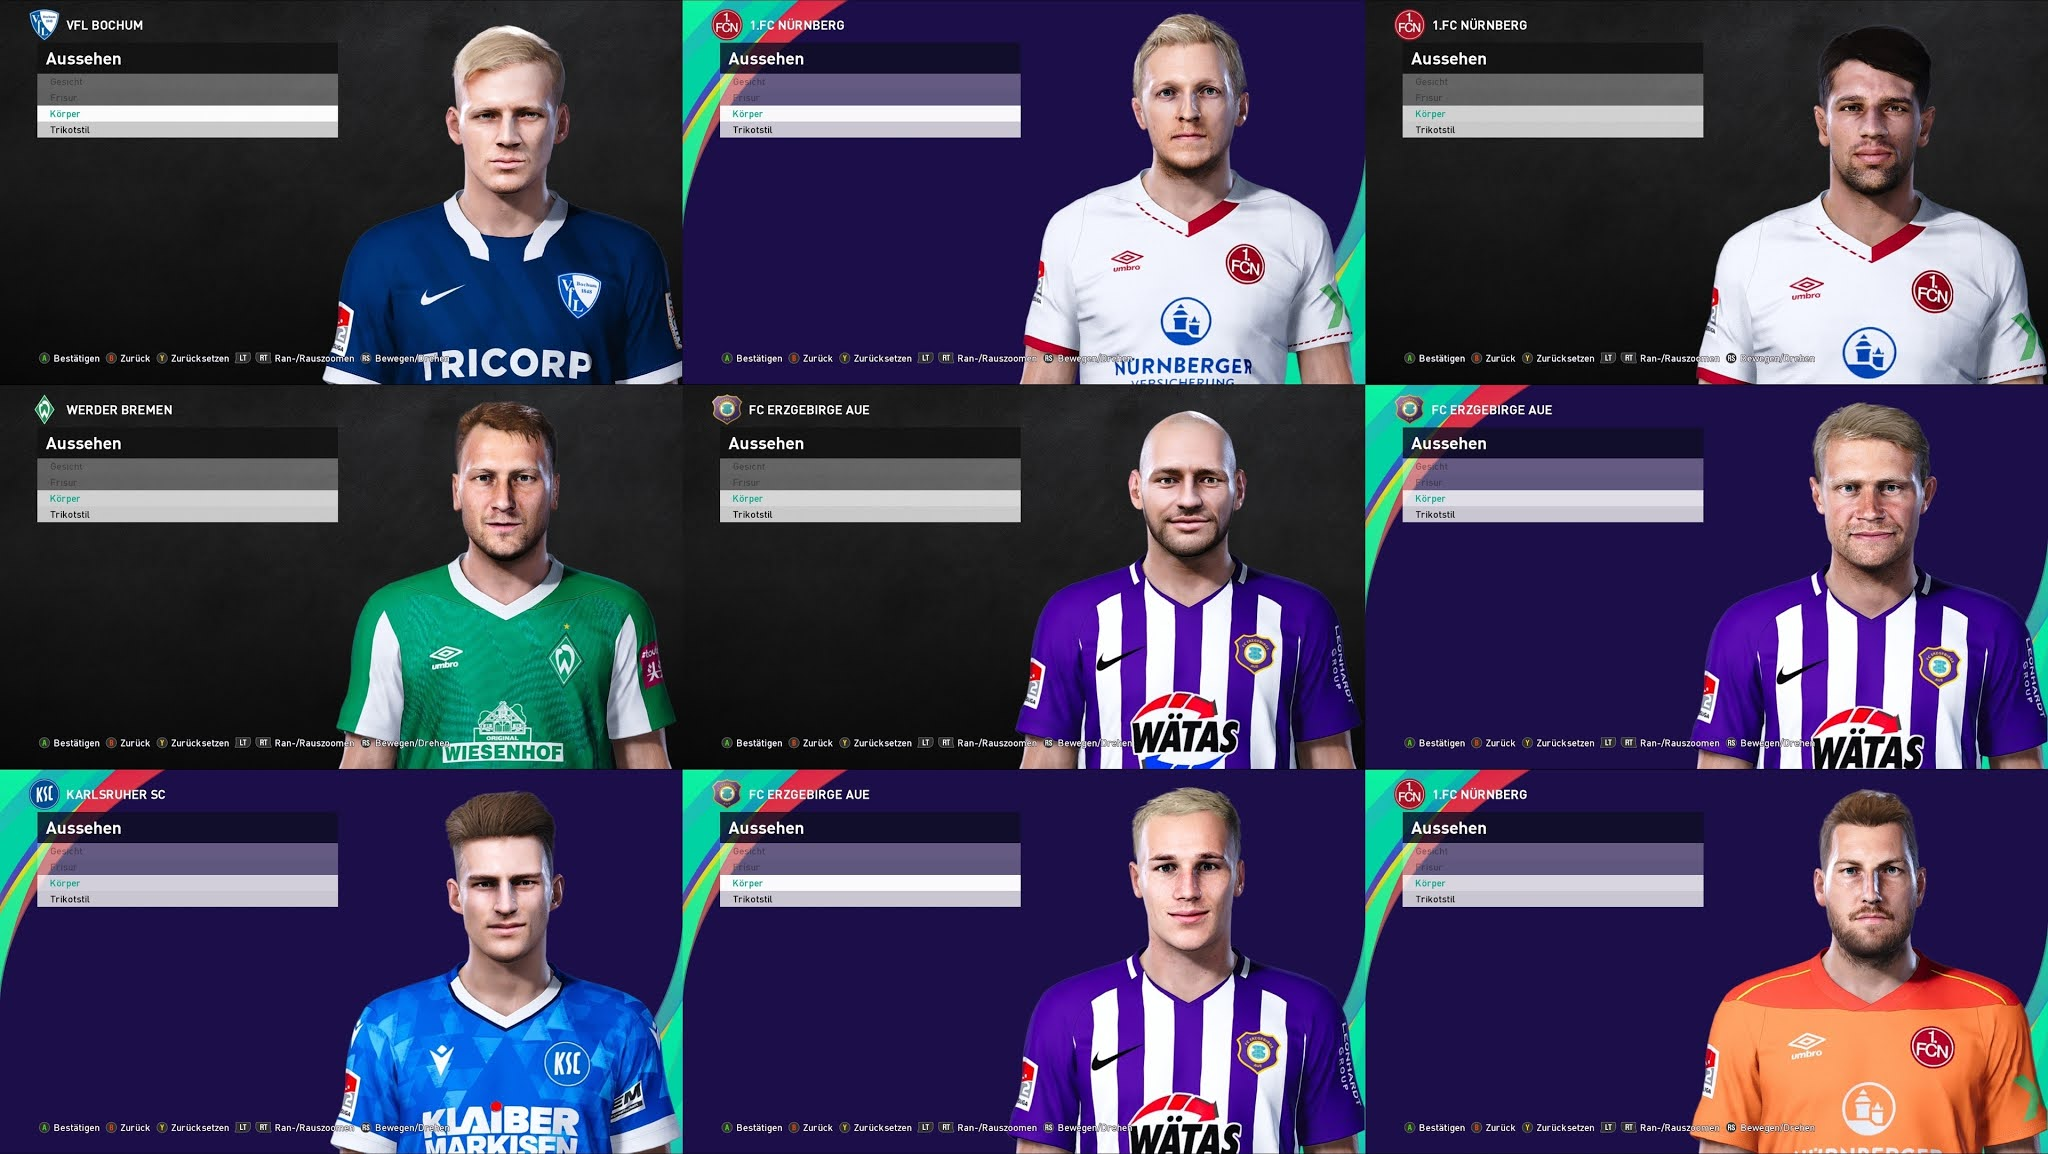 Pes 2021 2 Bundesliga Facepack By Heywips Pesnewupdate Com Free Download Latest Pro Evolution Soccer Patch Updates